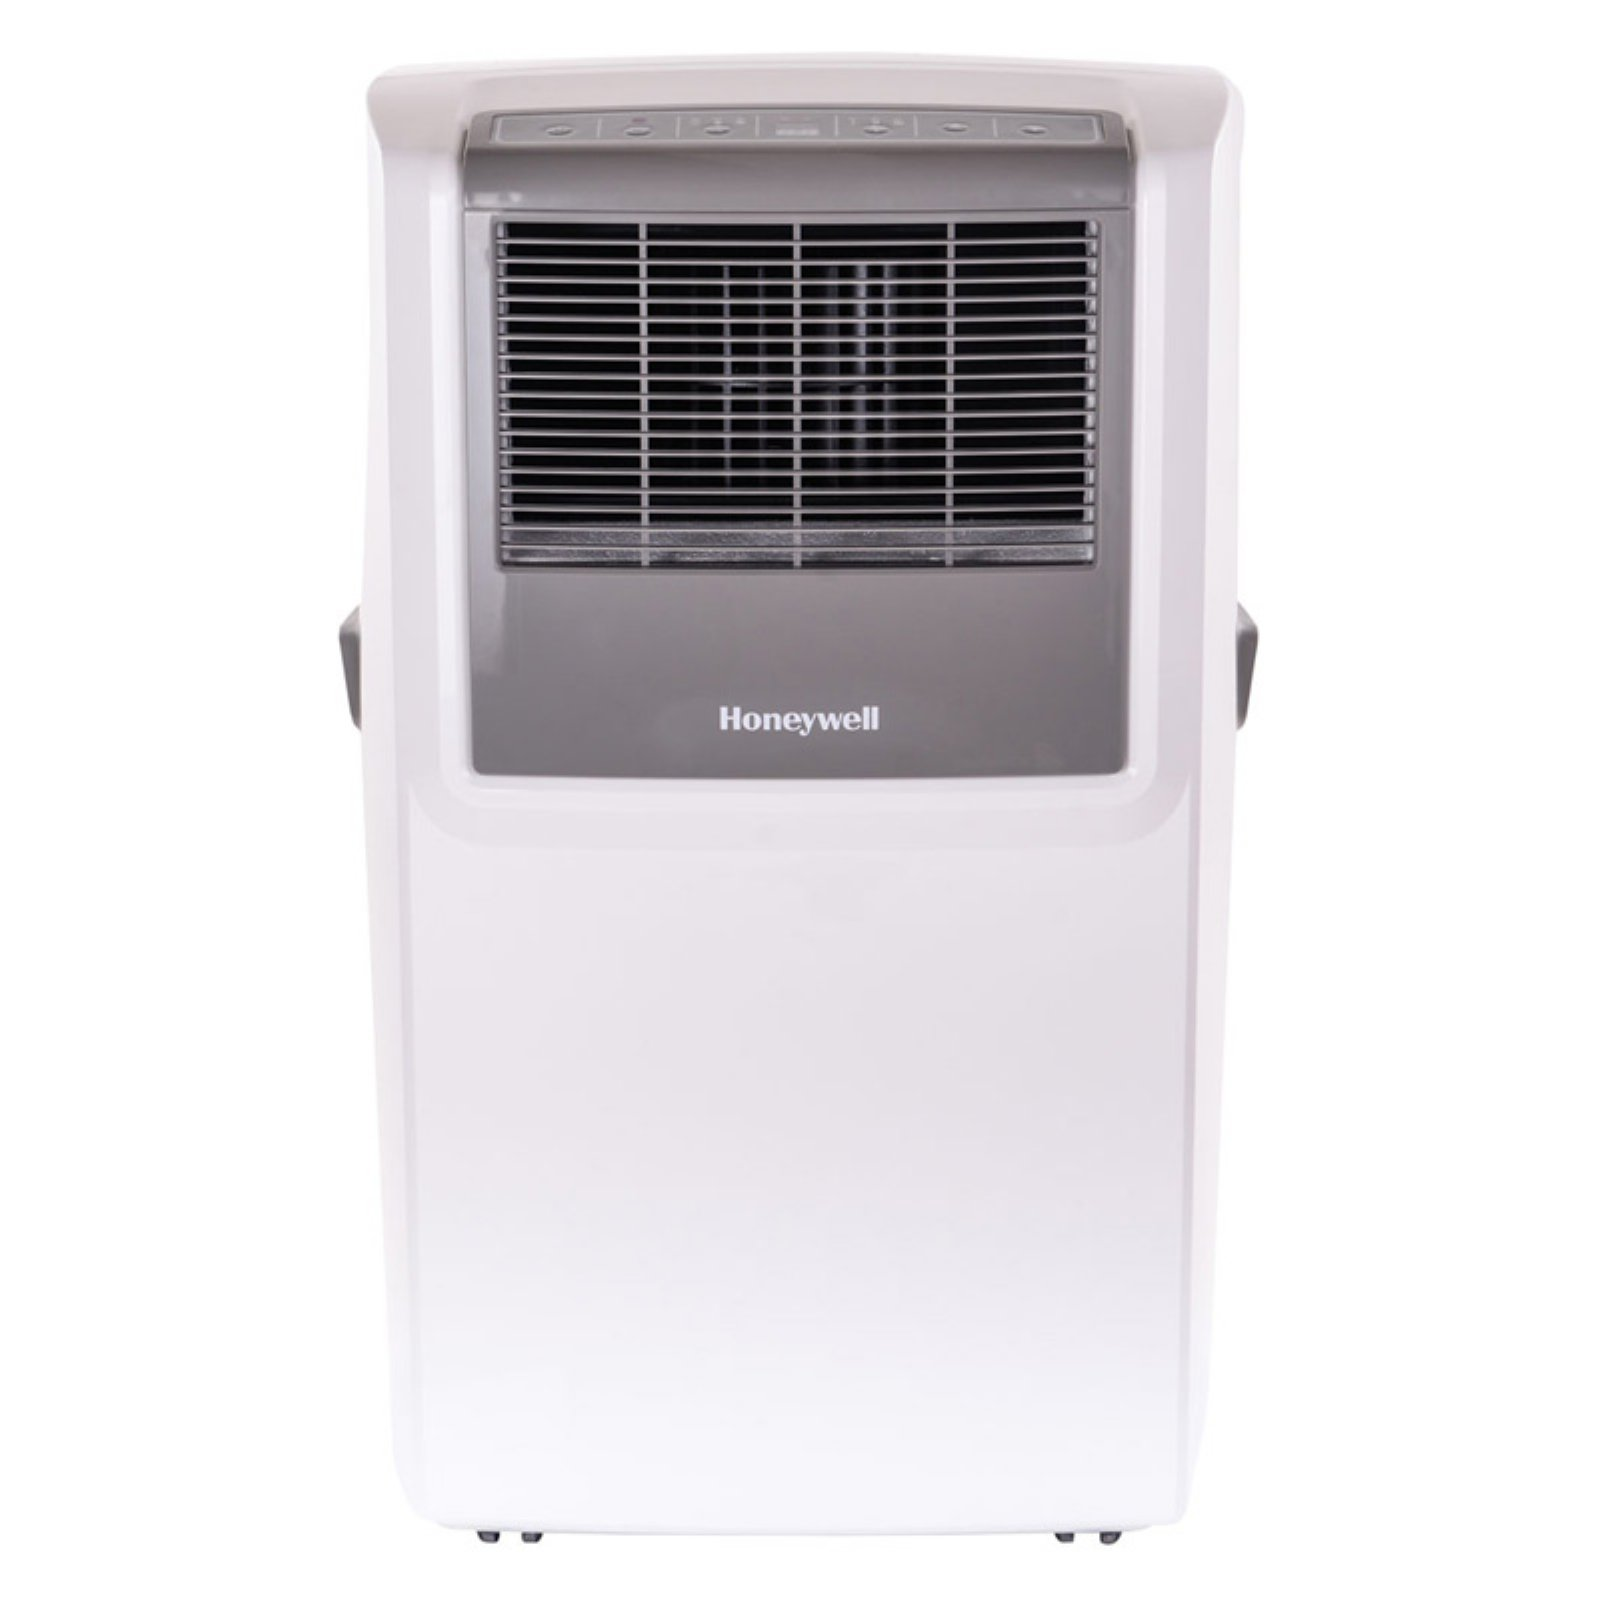 Honeywell MP10CESWW 10,000 BTU 115V Portable Air Conditioner Up To 300 Sq.  Ft. With